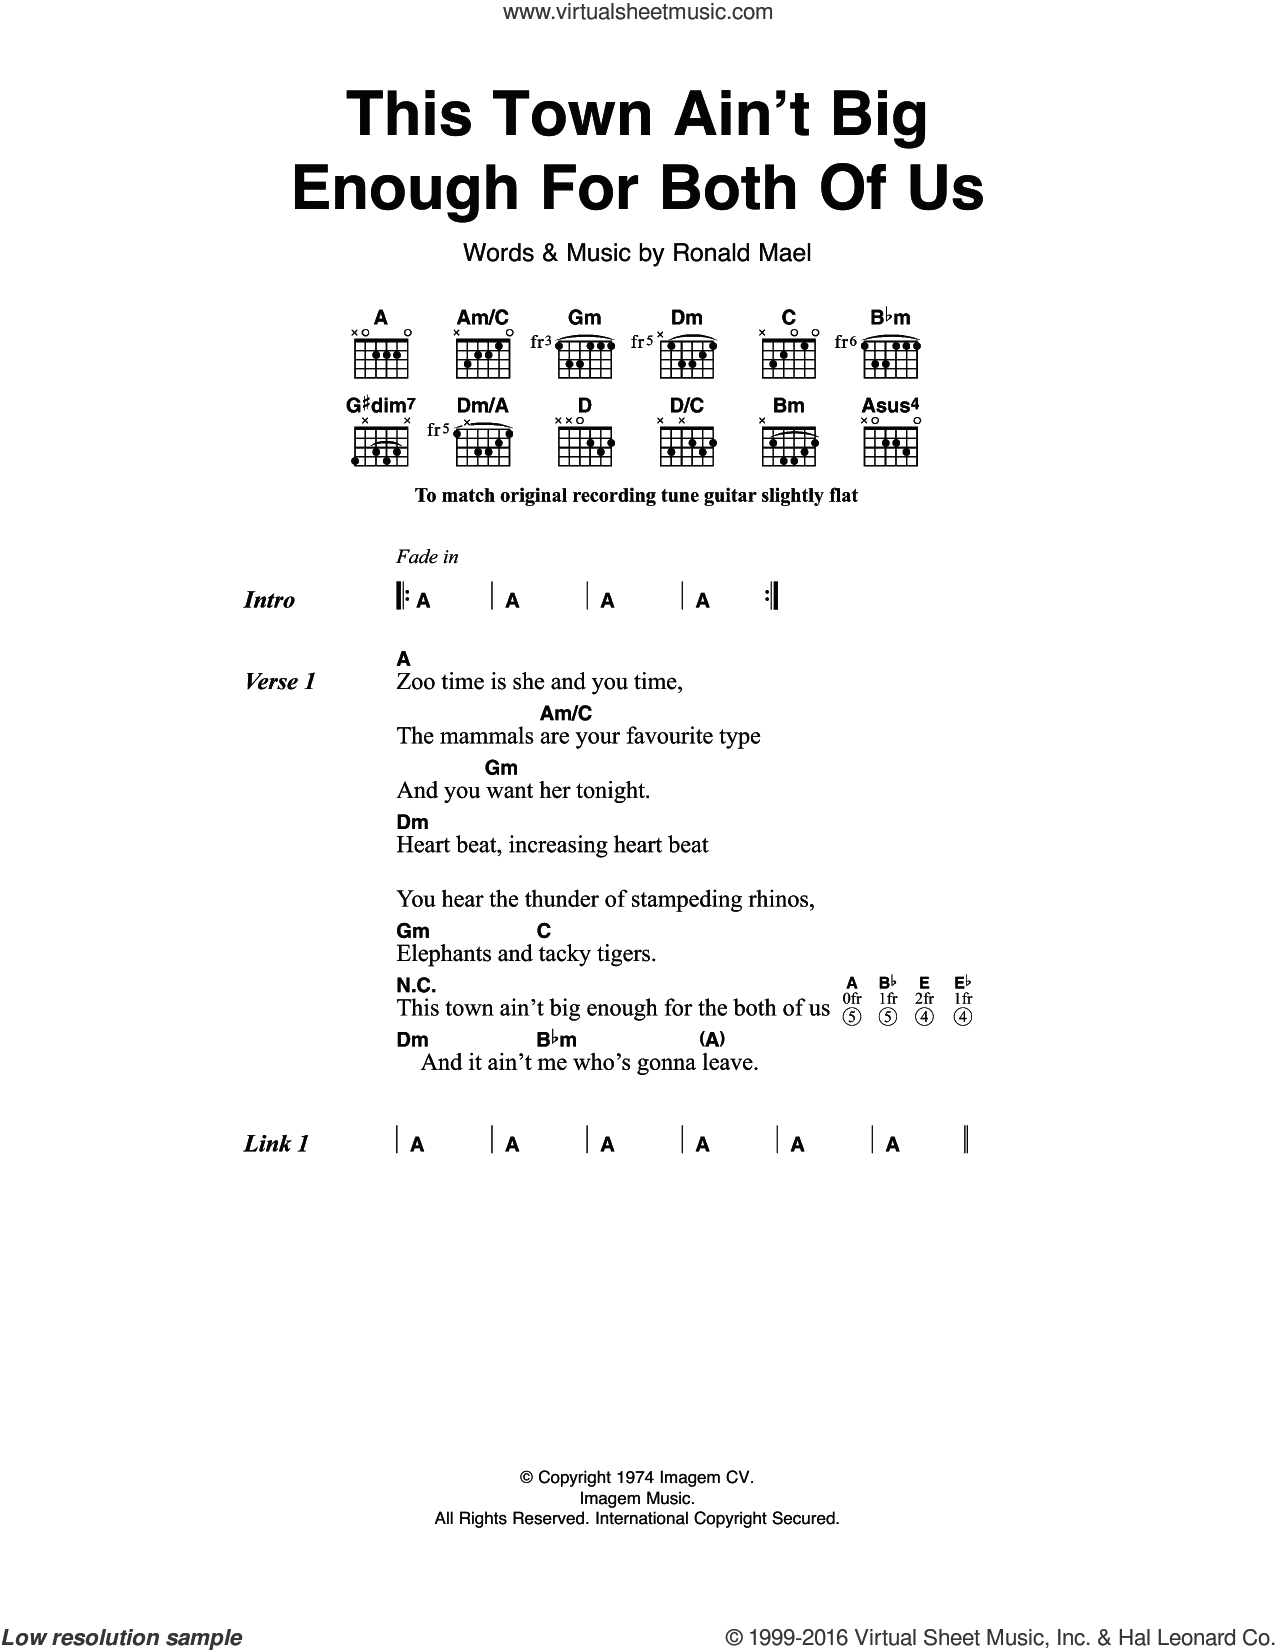 This Town Ain't Big Enough For Both Of Us sheet music for guitar (chords) by Sparks. Score Image Preview.